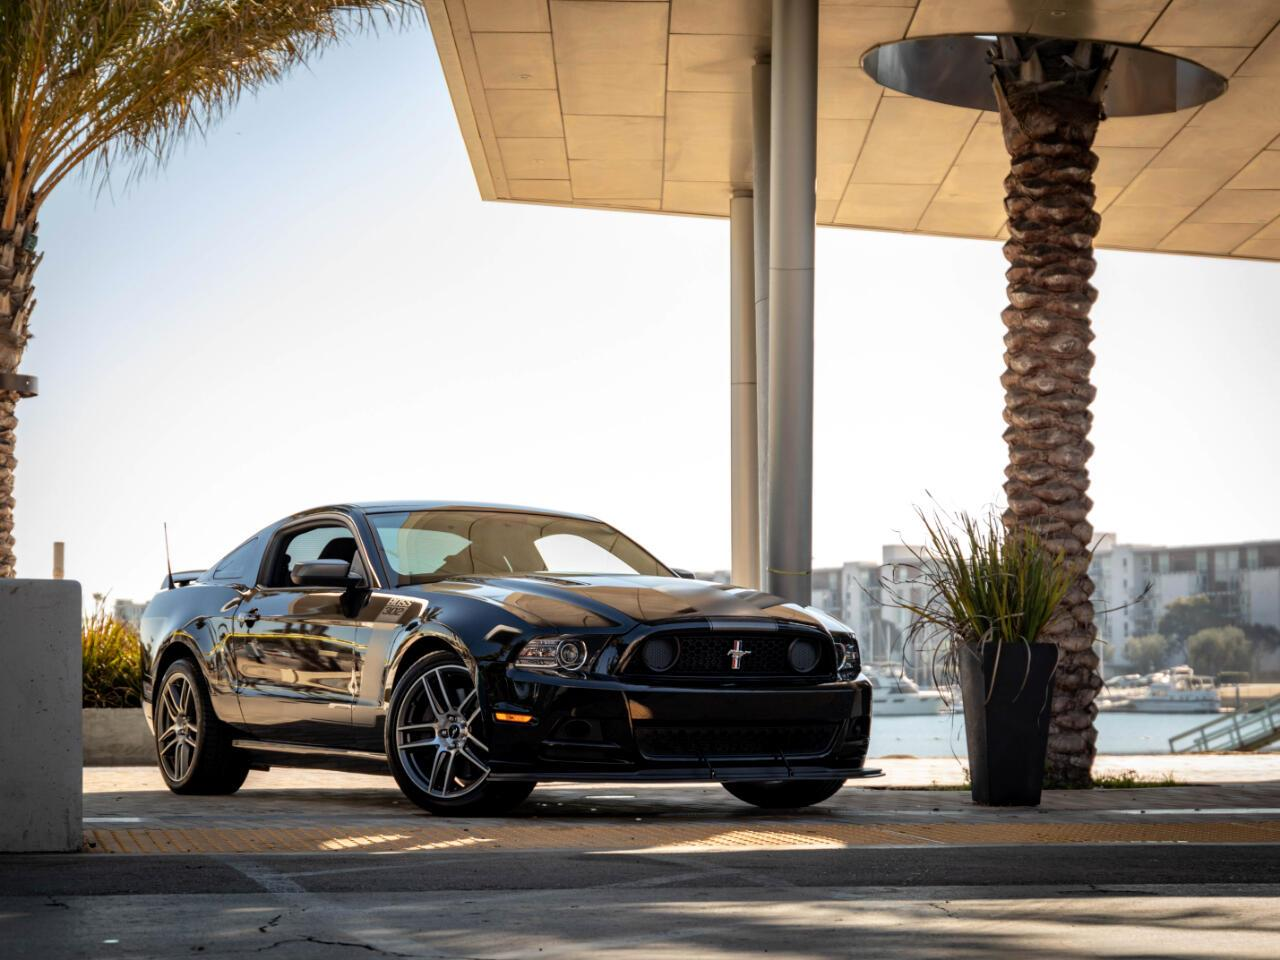 2013 Ford Mustang (CC-1418593) for sale in Marina Del Rey, California